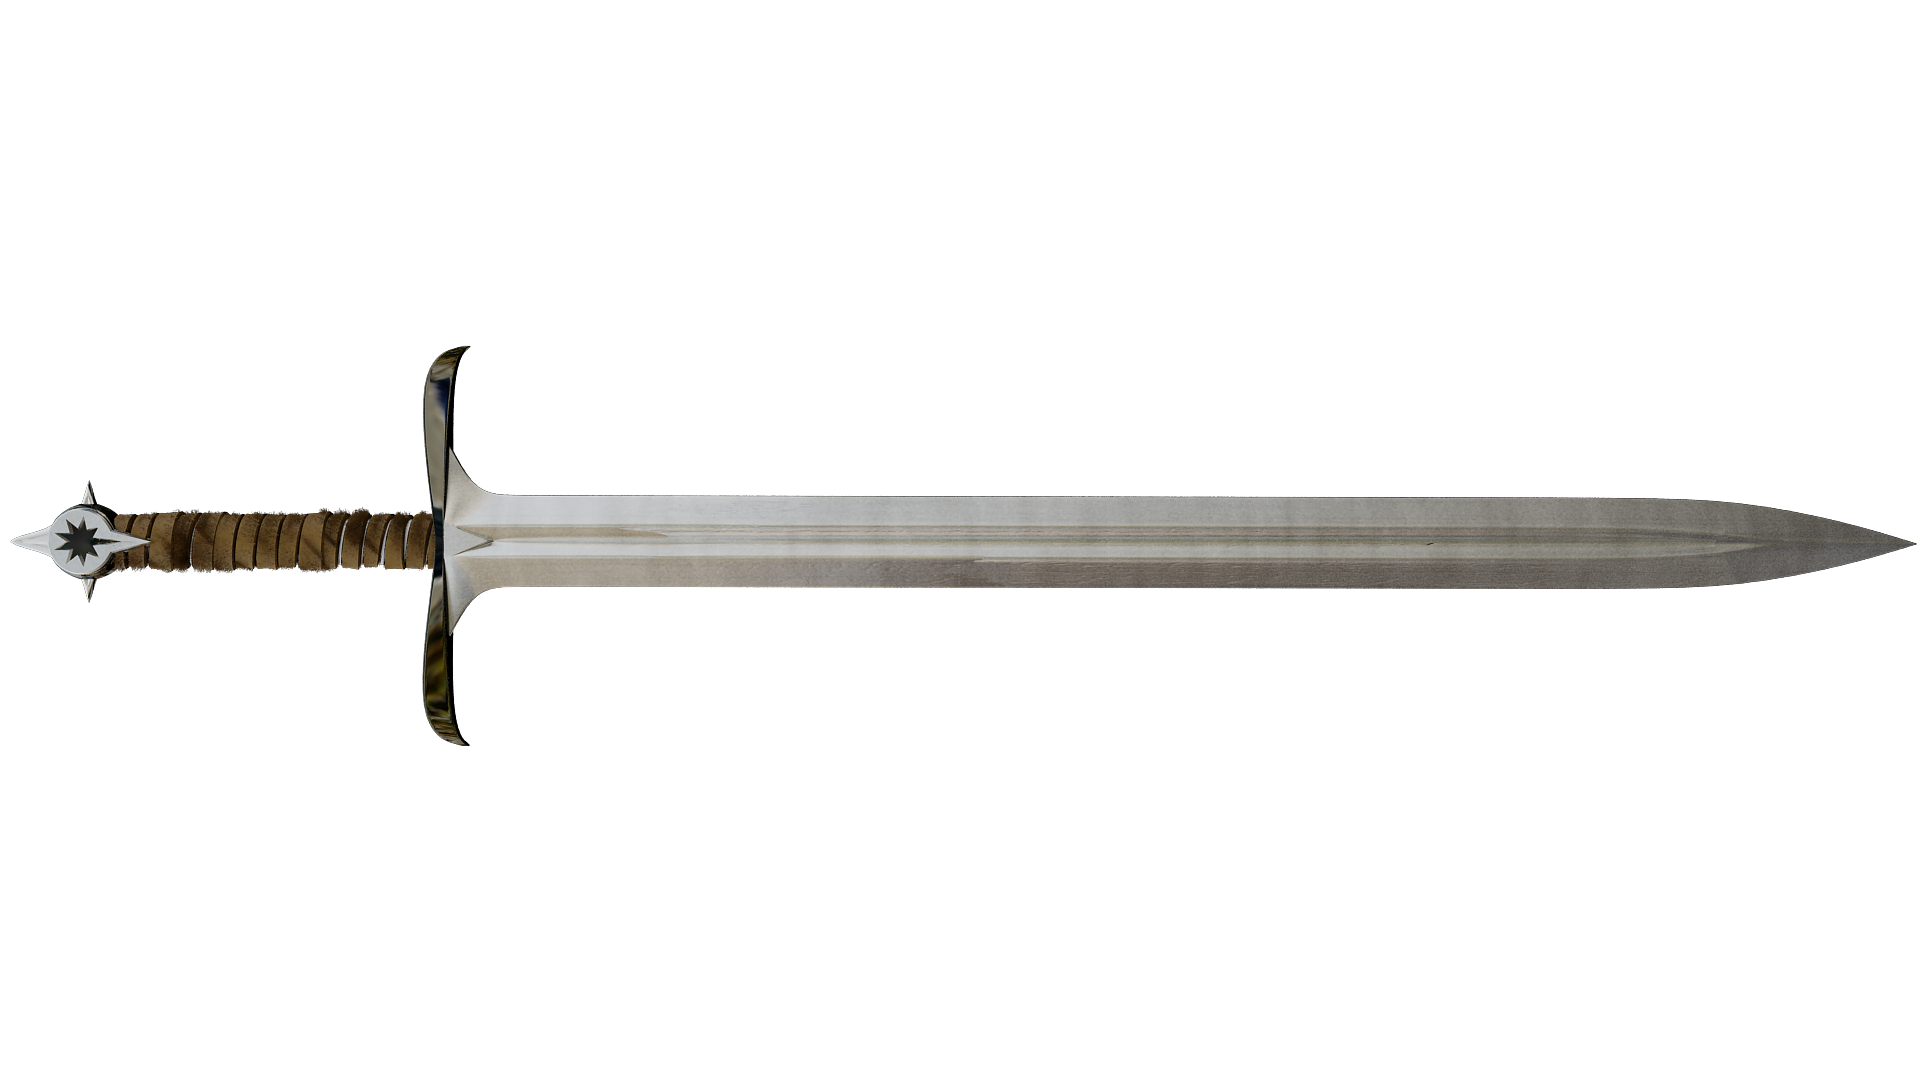 Le lion, le serpent et le bouc [Pw Baldwin Nuussian, Zayn Awarth, Azriel]  Sword-hd-png-sword-png-image-1920